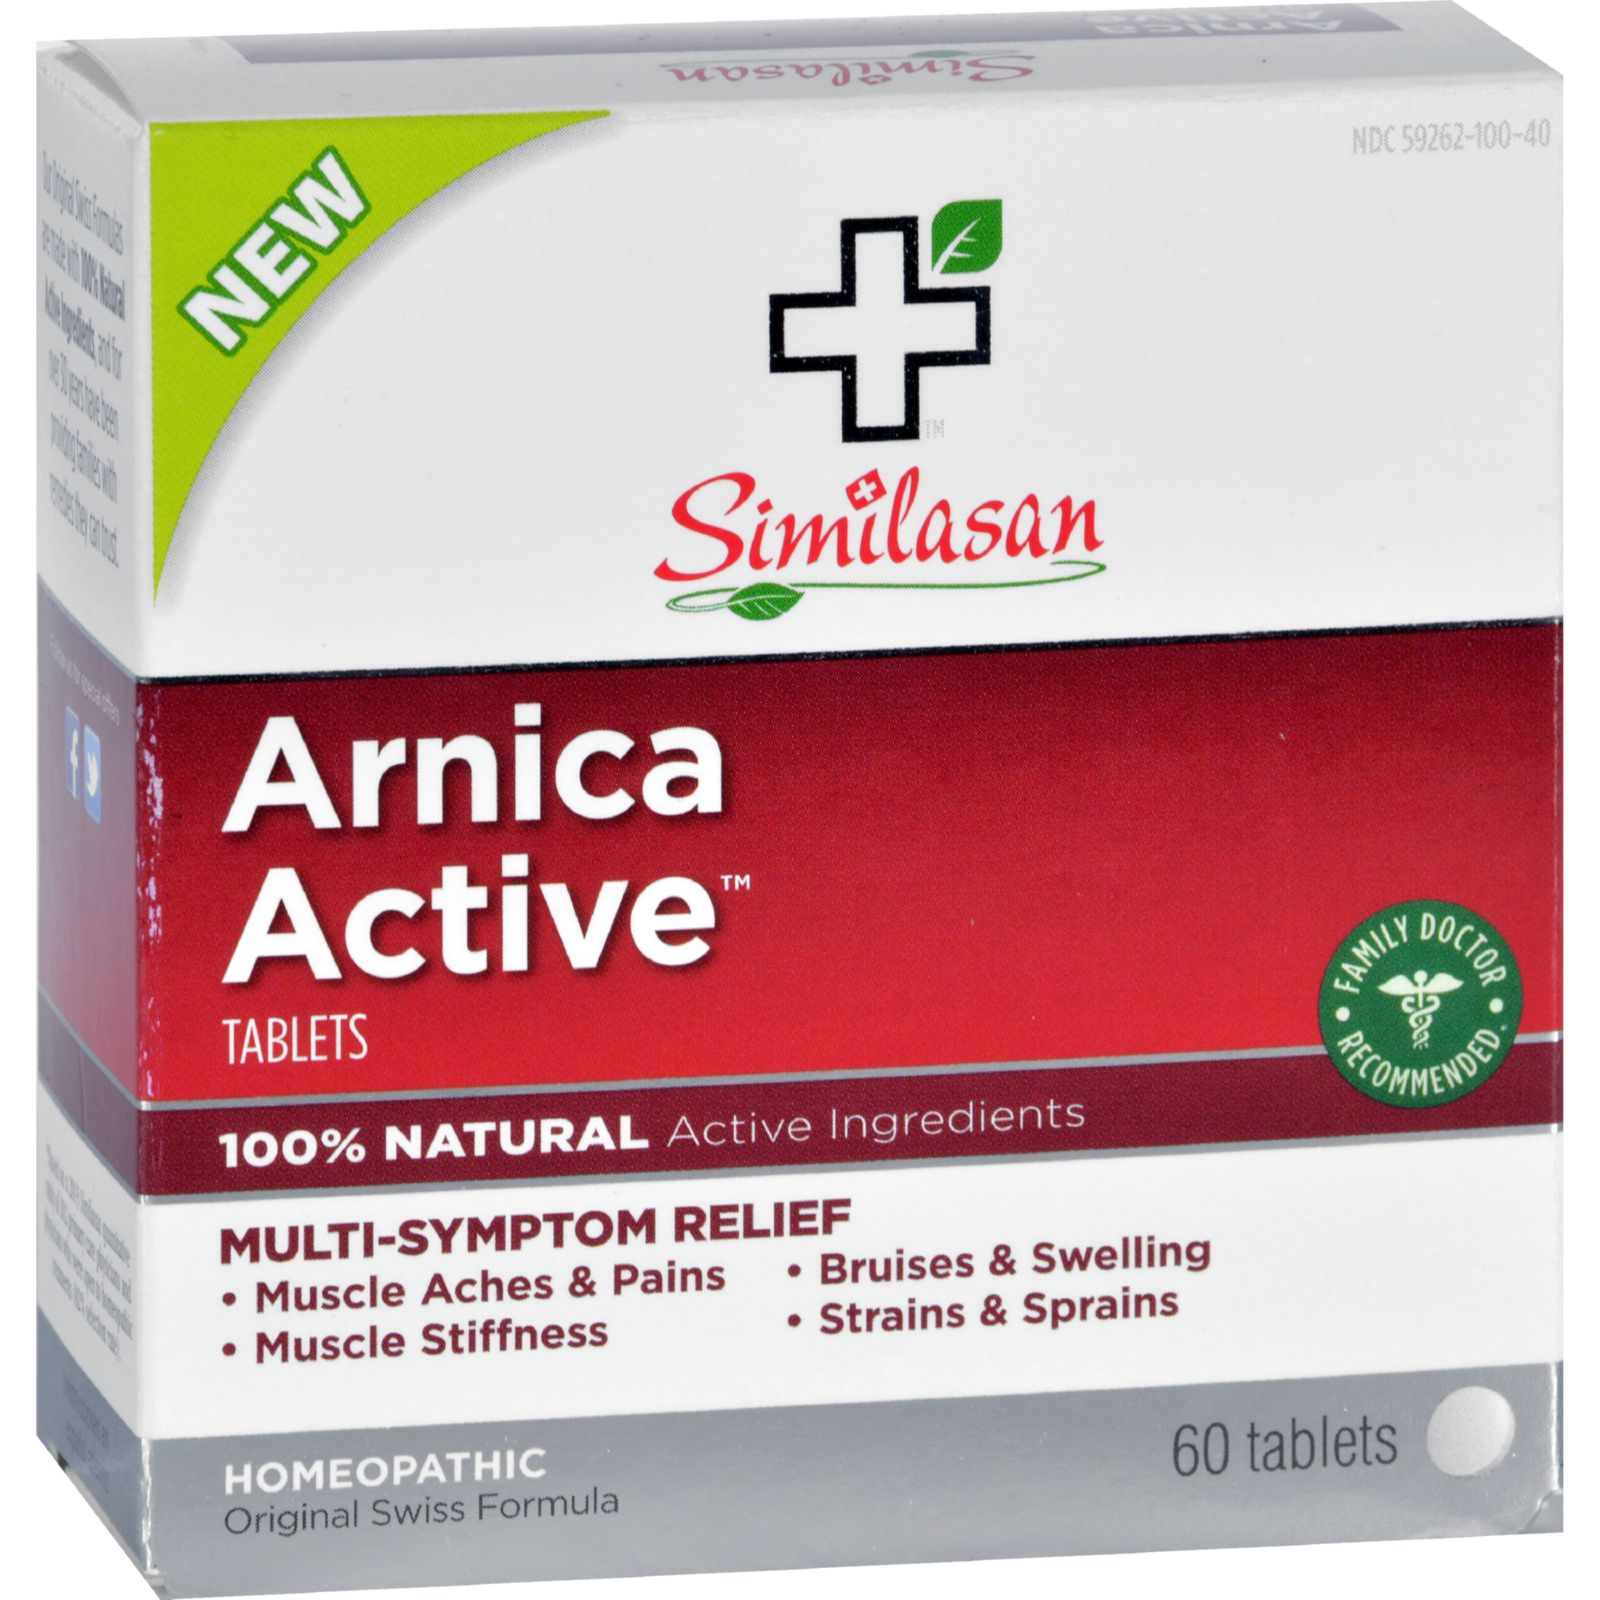 Similasan Arnica Active - 60 Tablets